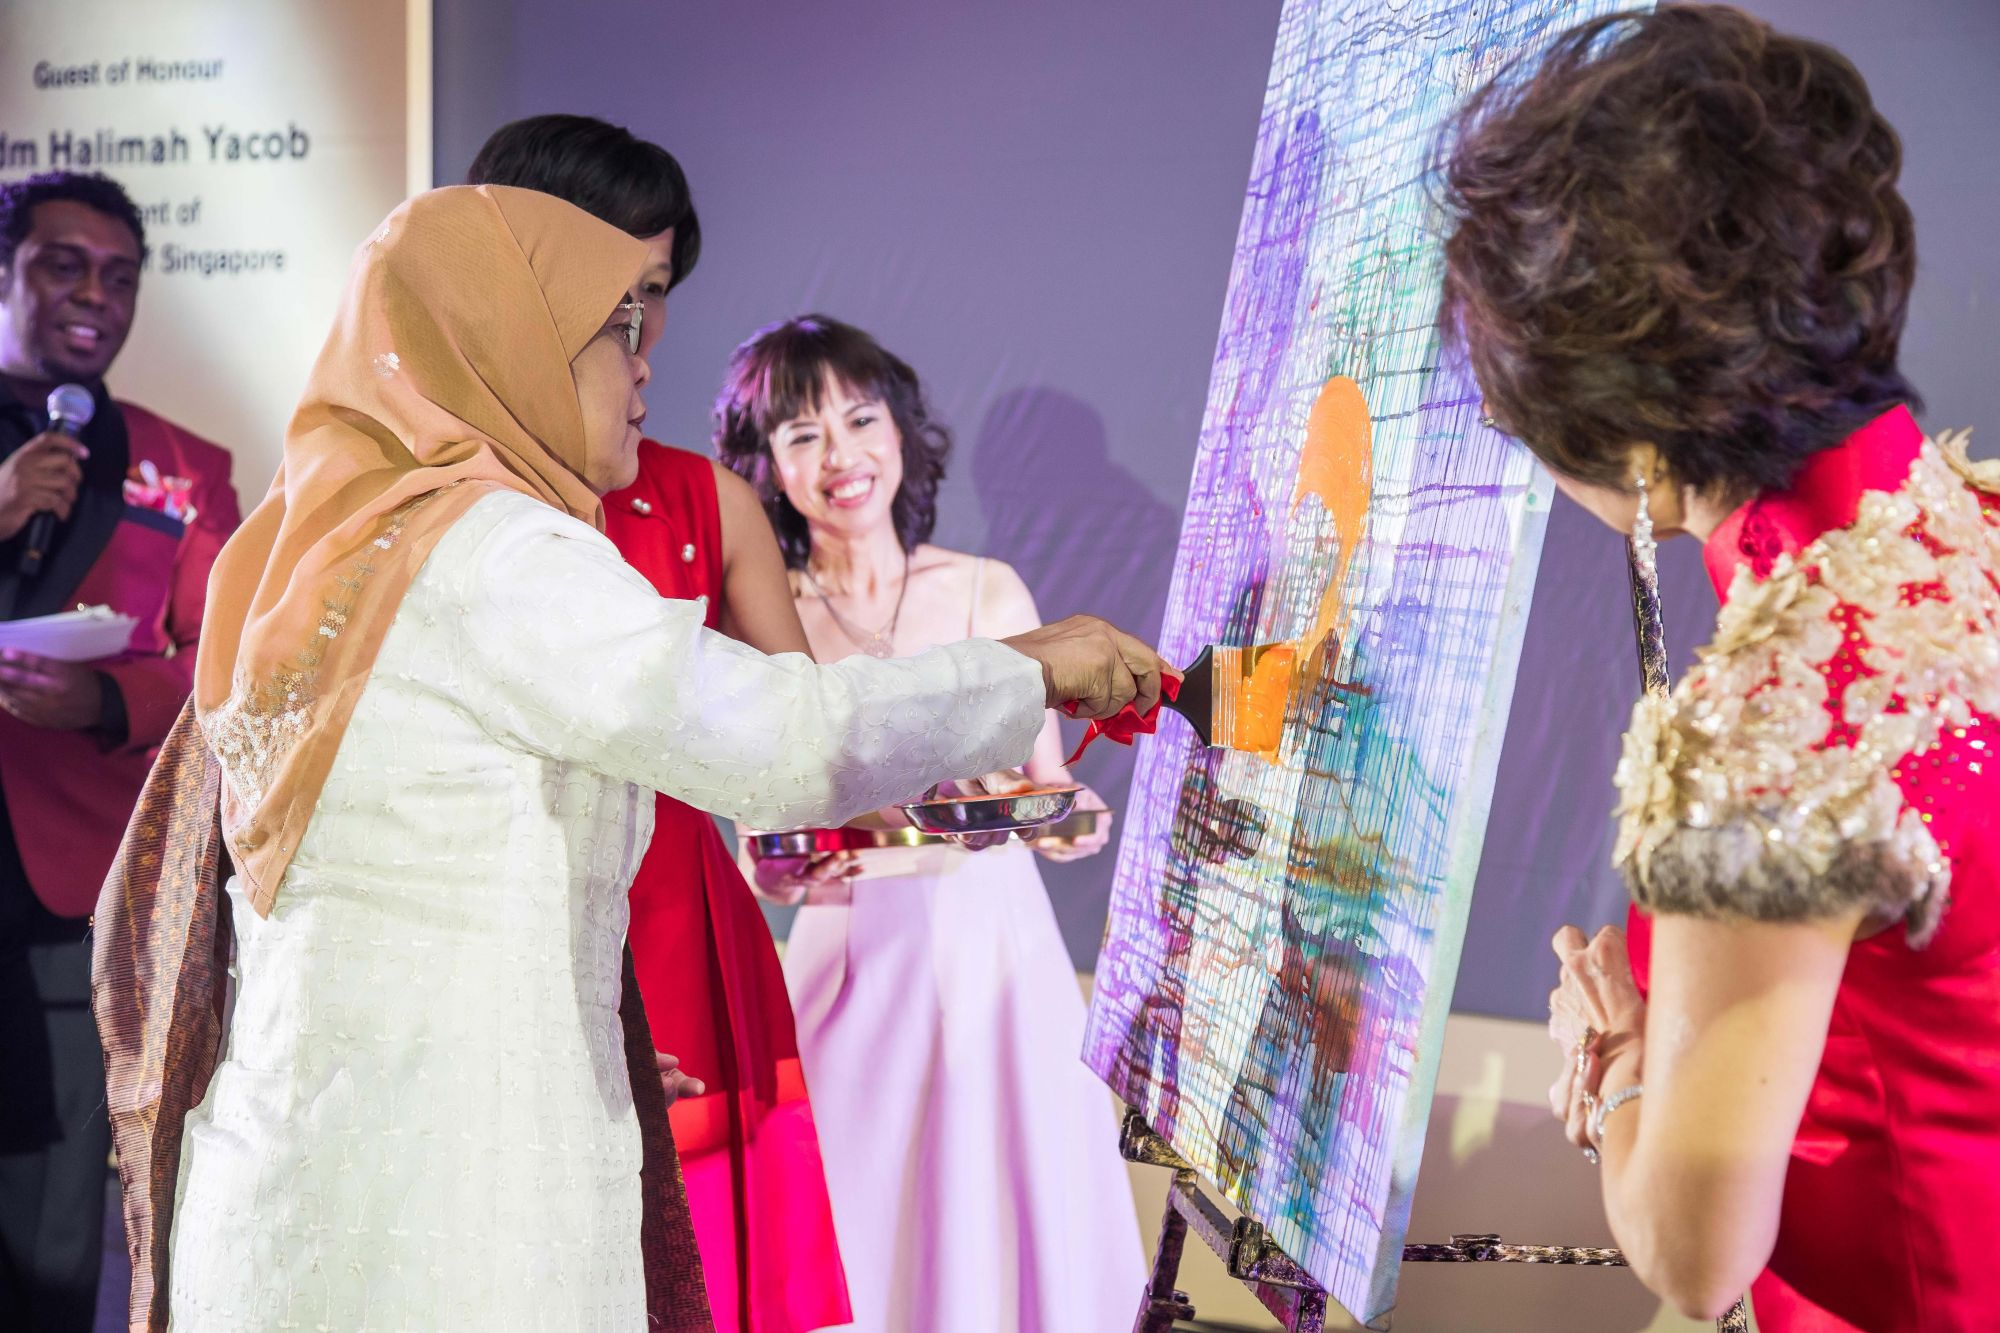 To commemorate Nafa's 80th anniversary, guest of honour, president Halimah Yacob, put the finishing touches to Singapore artist Yoko Choi's artwork titled Flowing